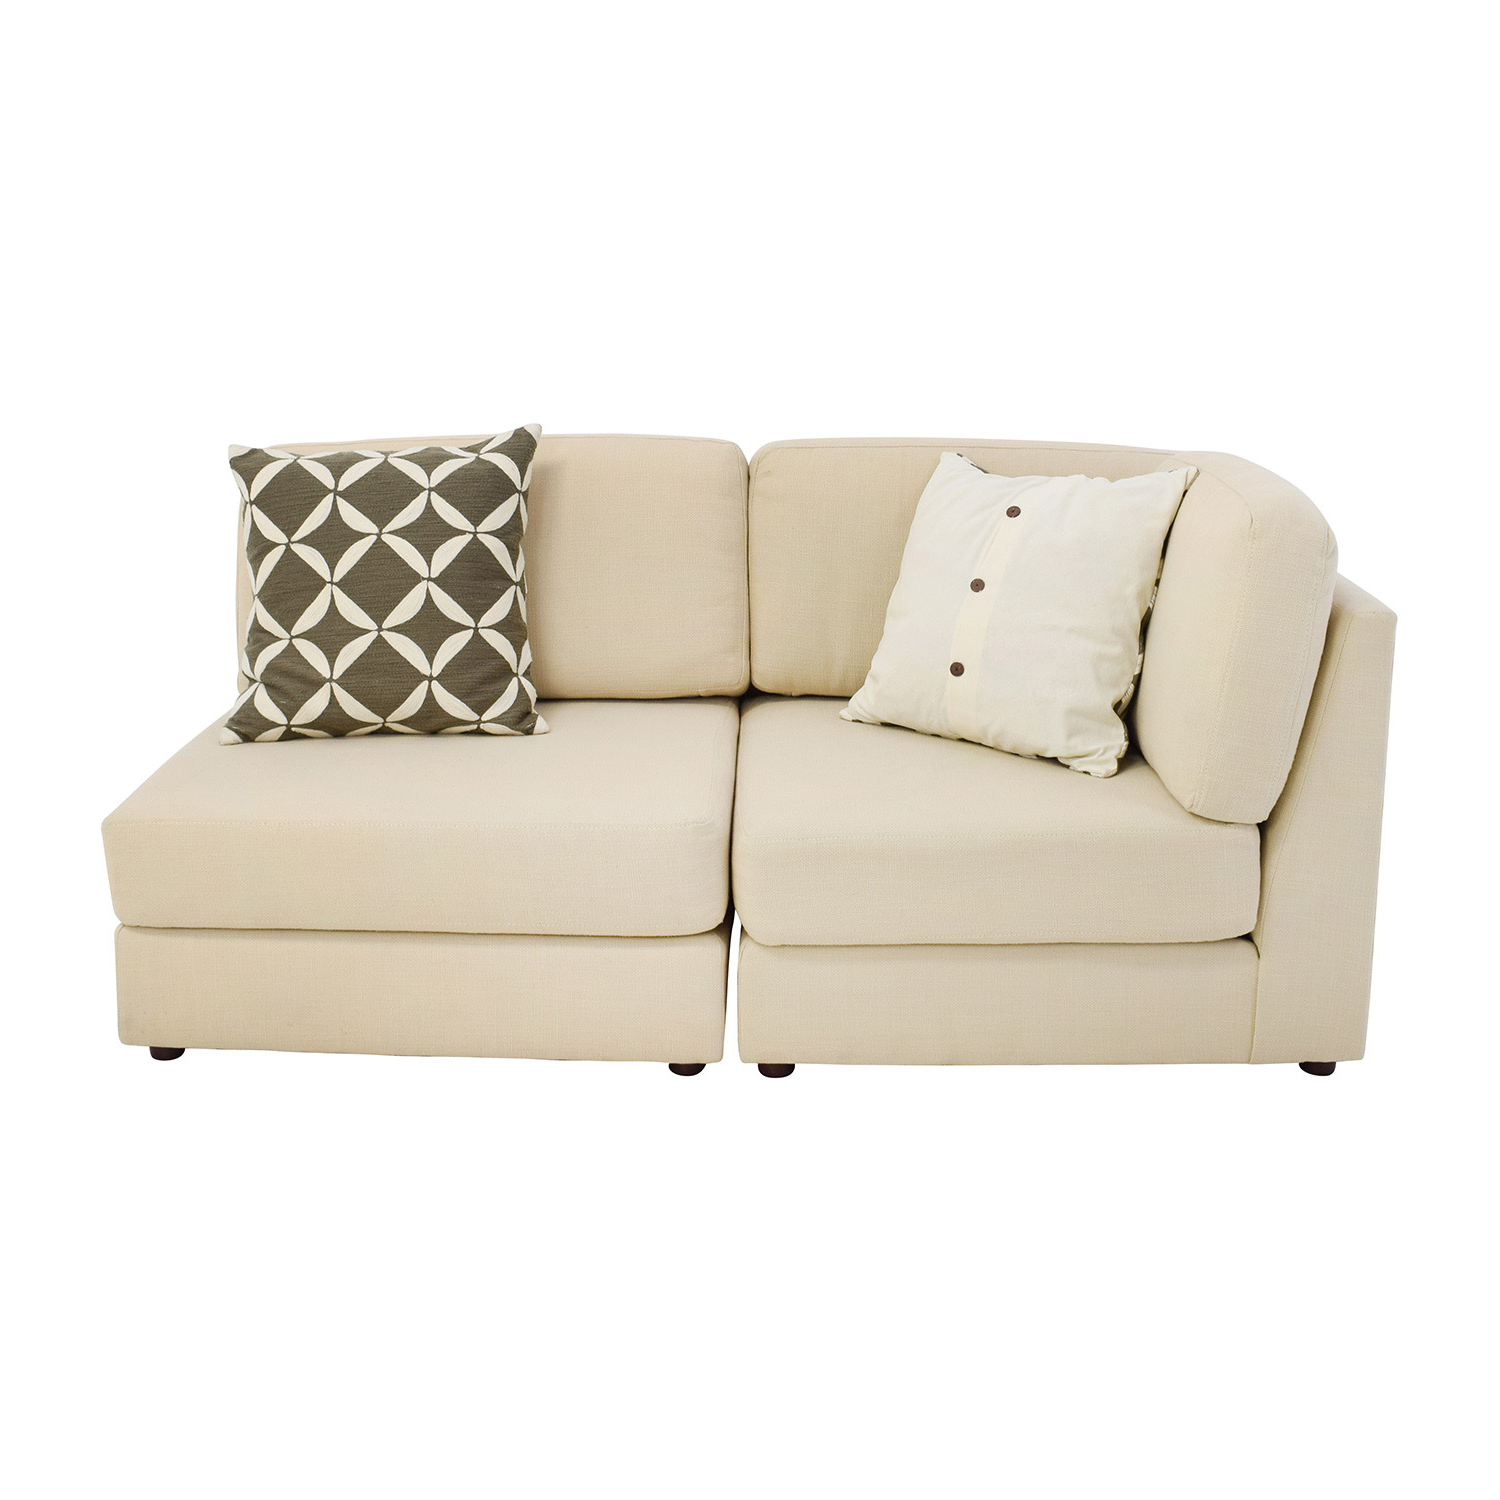 [%76% Off – West Elm West Elm Cream Chaise Sofa Or Two Chairs / Sofas Intended For Well Known Elm Sofa Chairs|Elm Sofa Chairs Inside Most Up To Date 76% Off – West Elm West Elm Cream Chaise Sofa Or Two Chairs / Sofas|Most Up To Date Elm Sofa Chairs Intended For 76% Off – West Elm West Elm Cream Chaise Sofa Or Two Chairs / Sofas|Most Recently Released 76% Off – West Elm West Elm Cream Chaise Sofa Or Two Chairs / Sofas Pertaining To Elm Sofa Chairs%] (View 3 of 20)